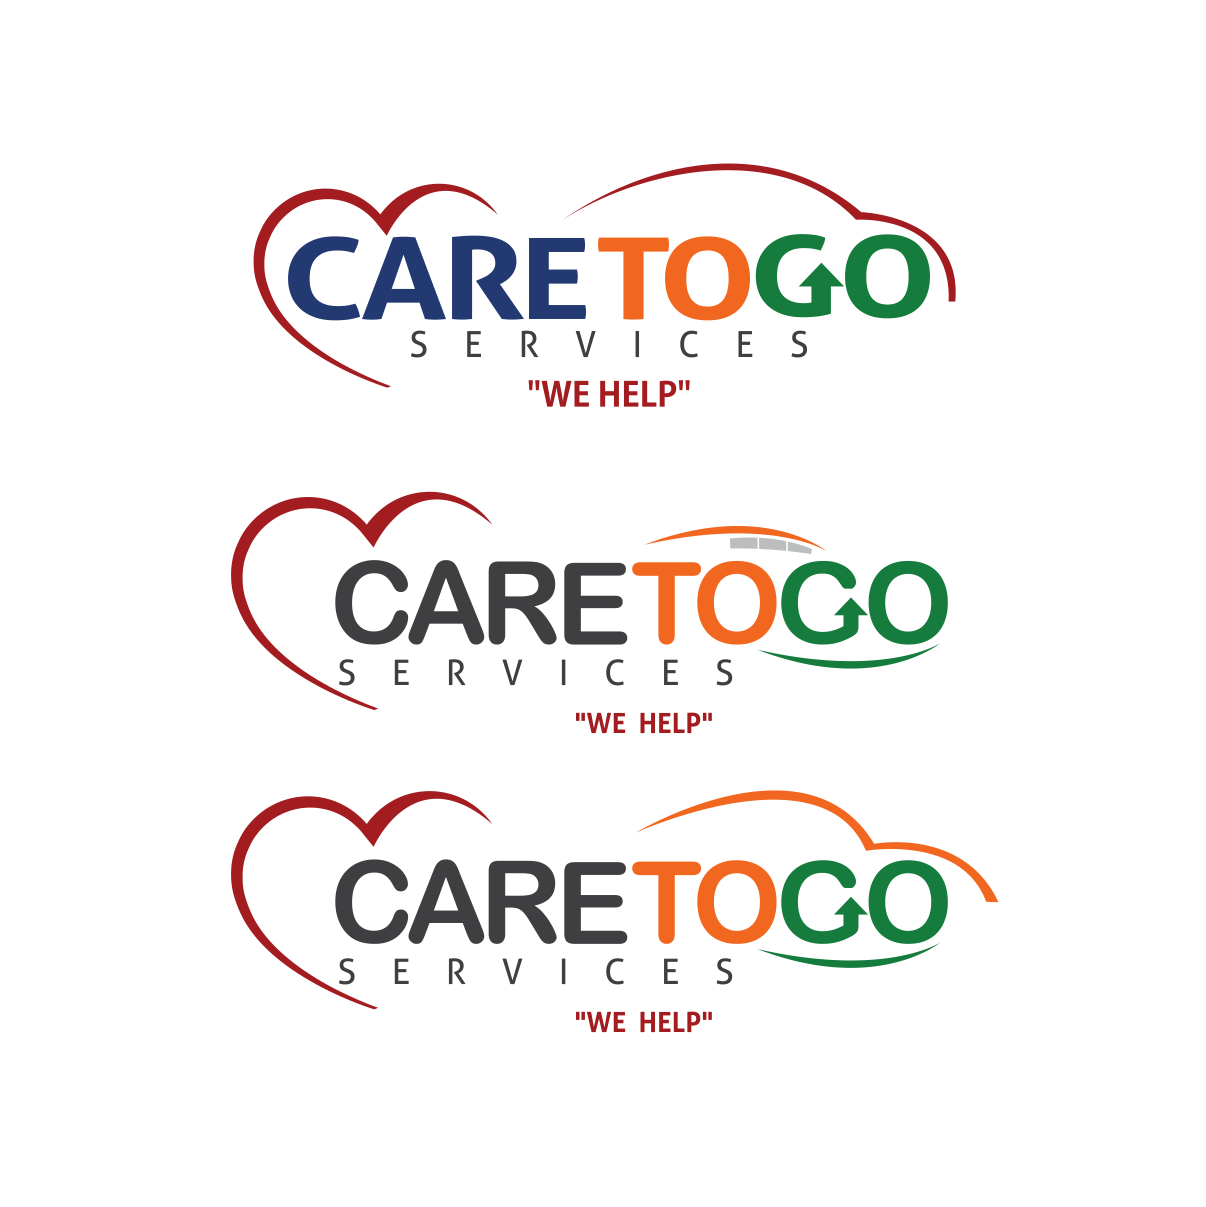 Logo Design by moisesf - Entry No. 203 in the Logo Design Contest Care To Go Services.